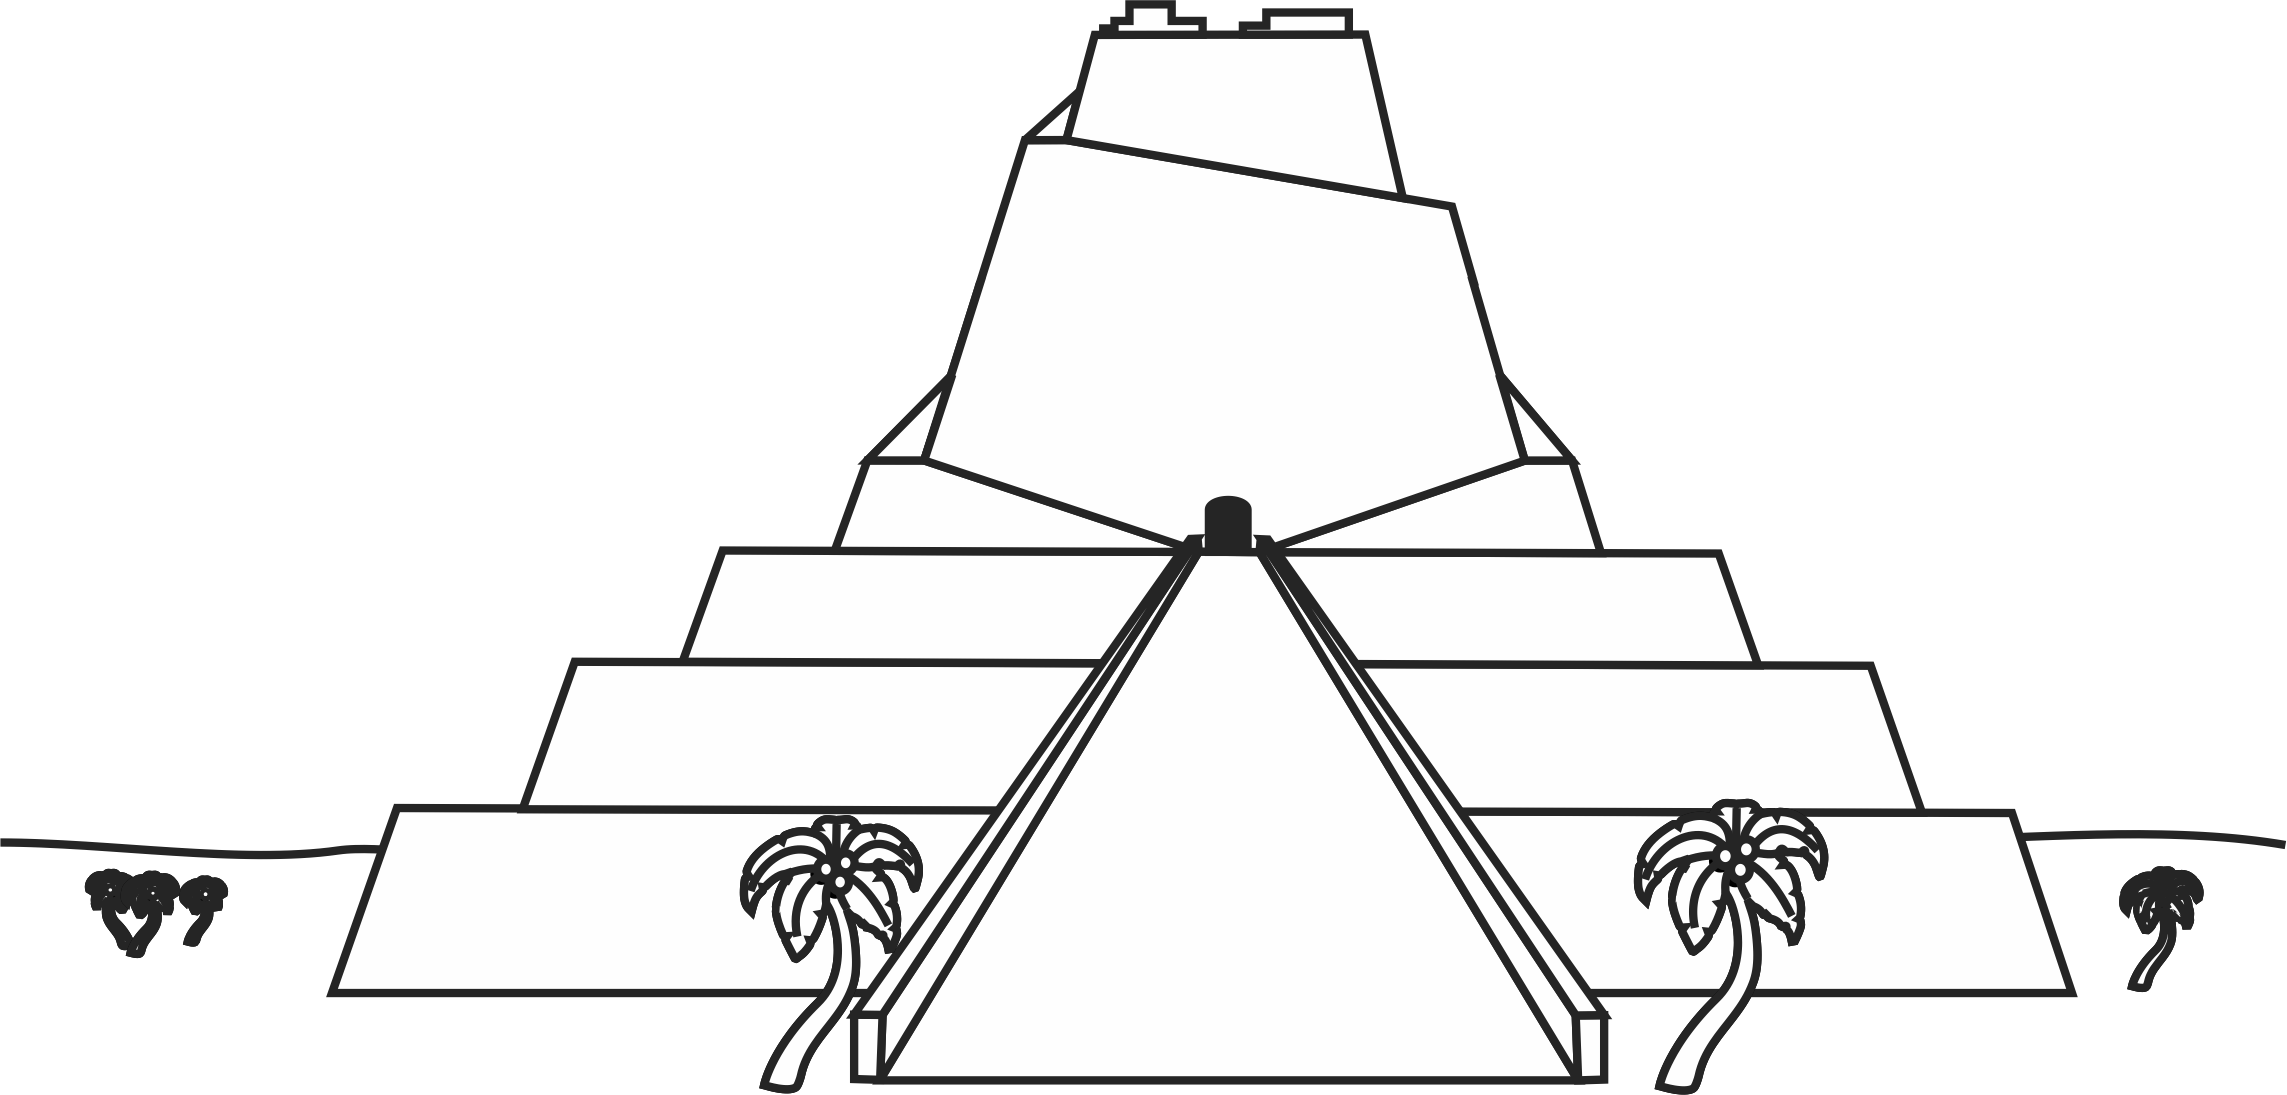 tower of babel coloring page tower of babel file folder game